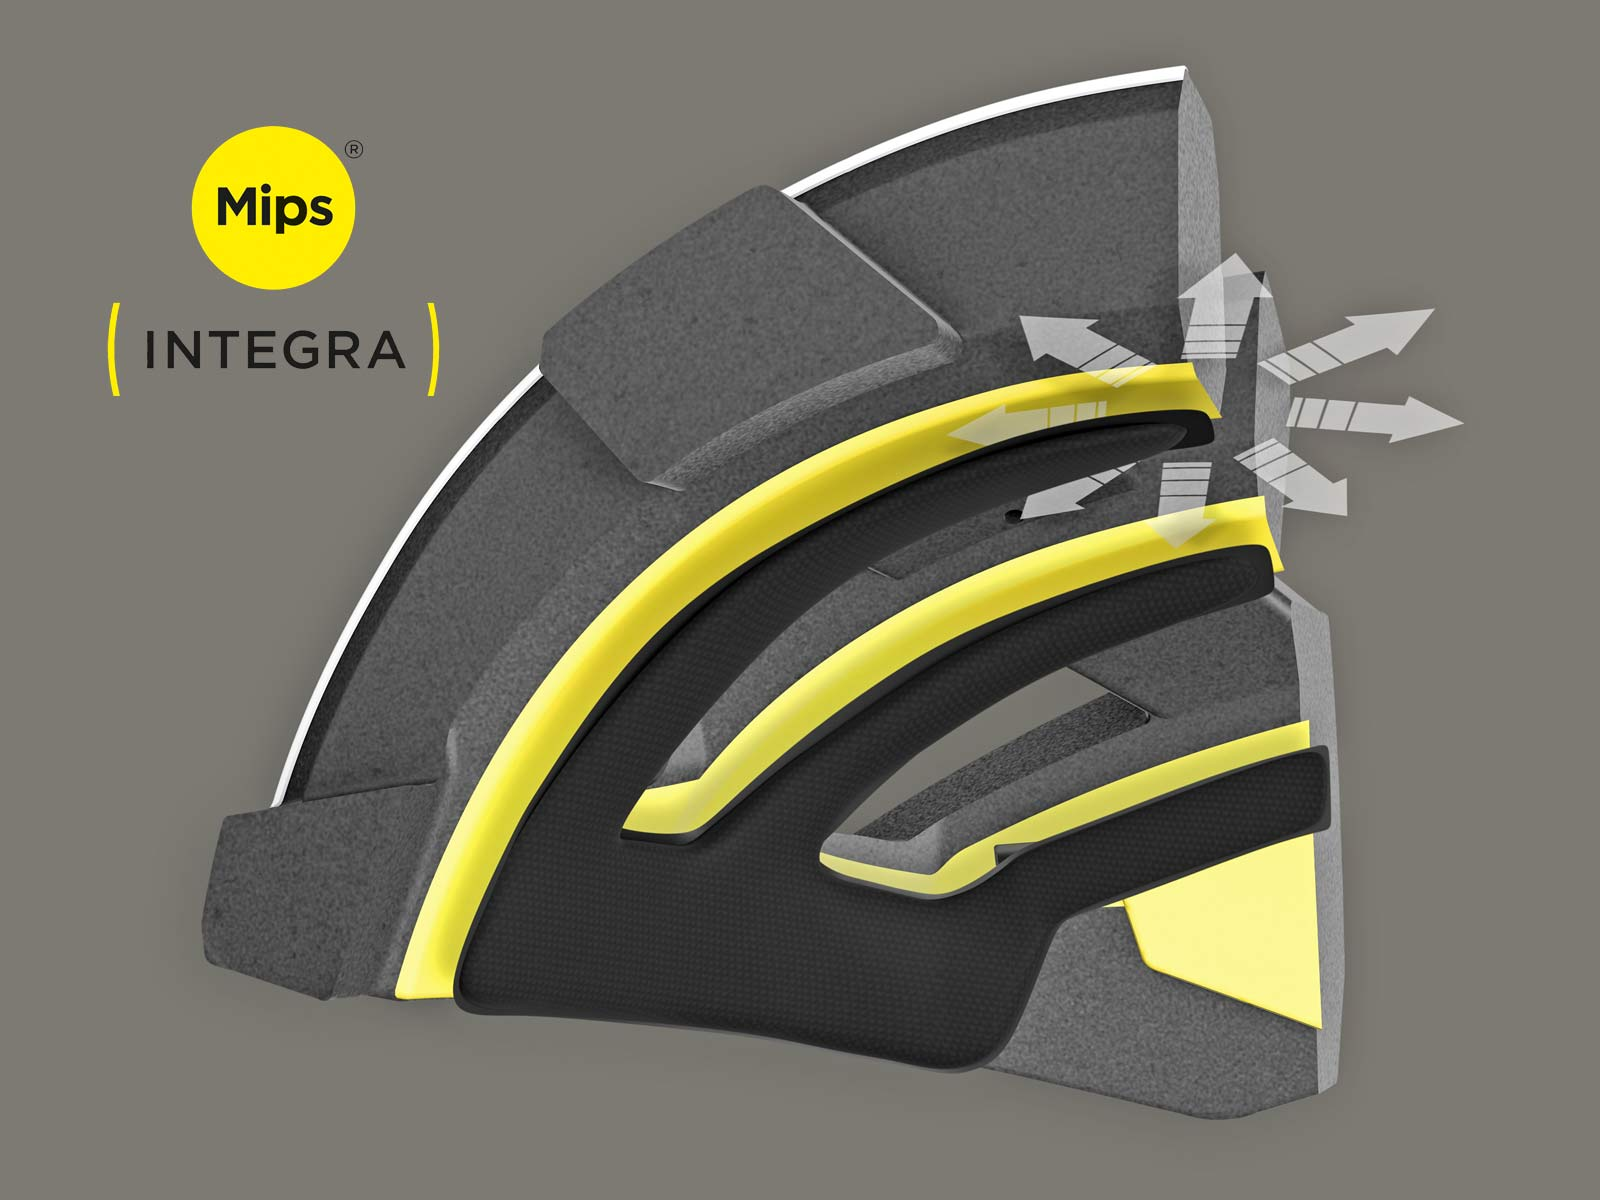 MIPS Integra new integrated helmet protection, rotation-reduction, yellow low-friction liner, new safer cycling helmets, inmold MIPS detail